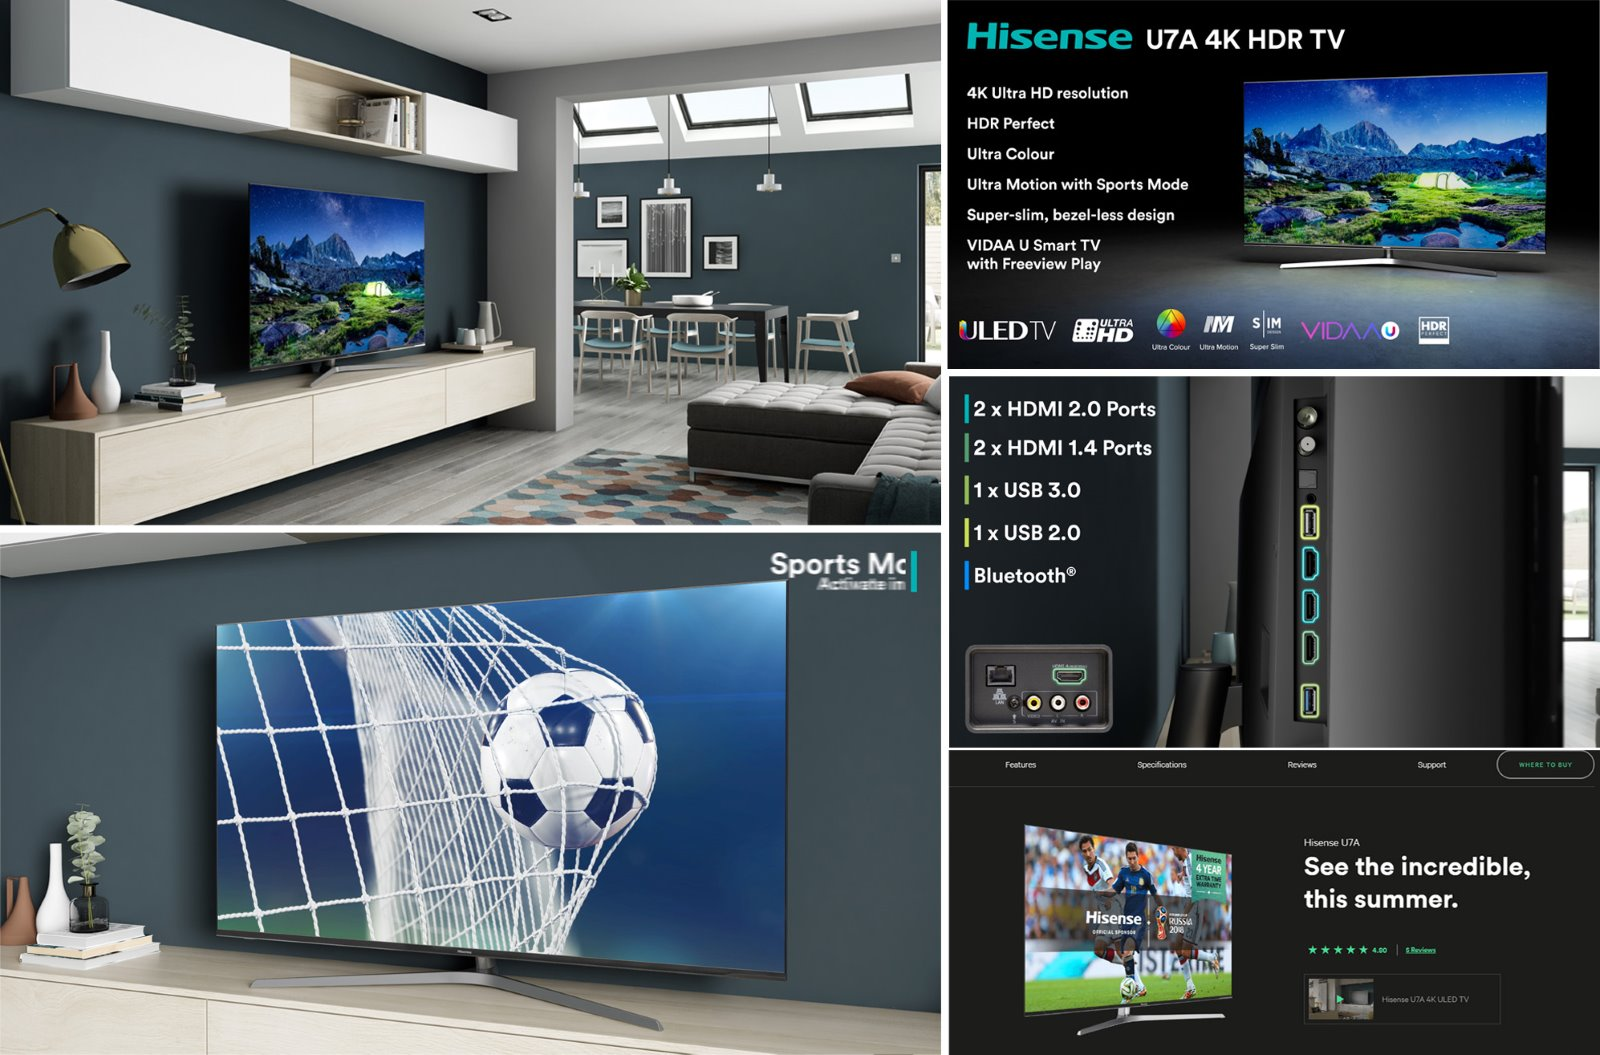 Hisense world cup video CGI advertising